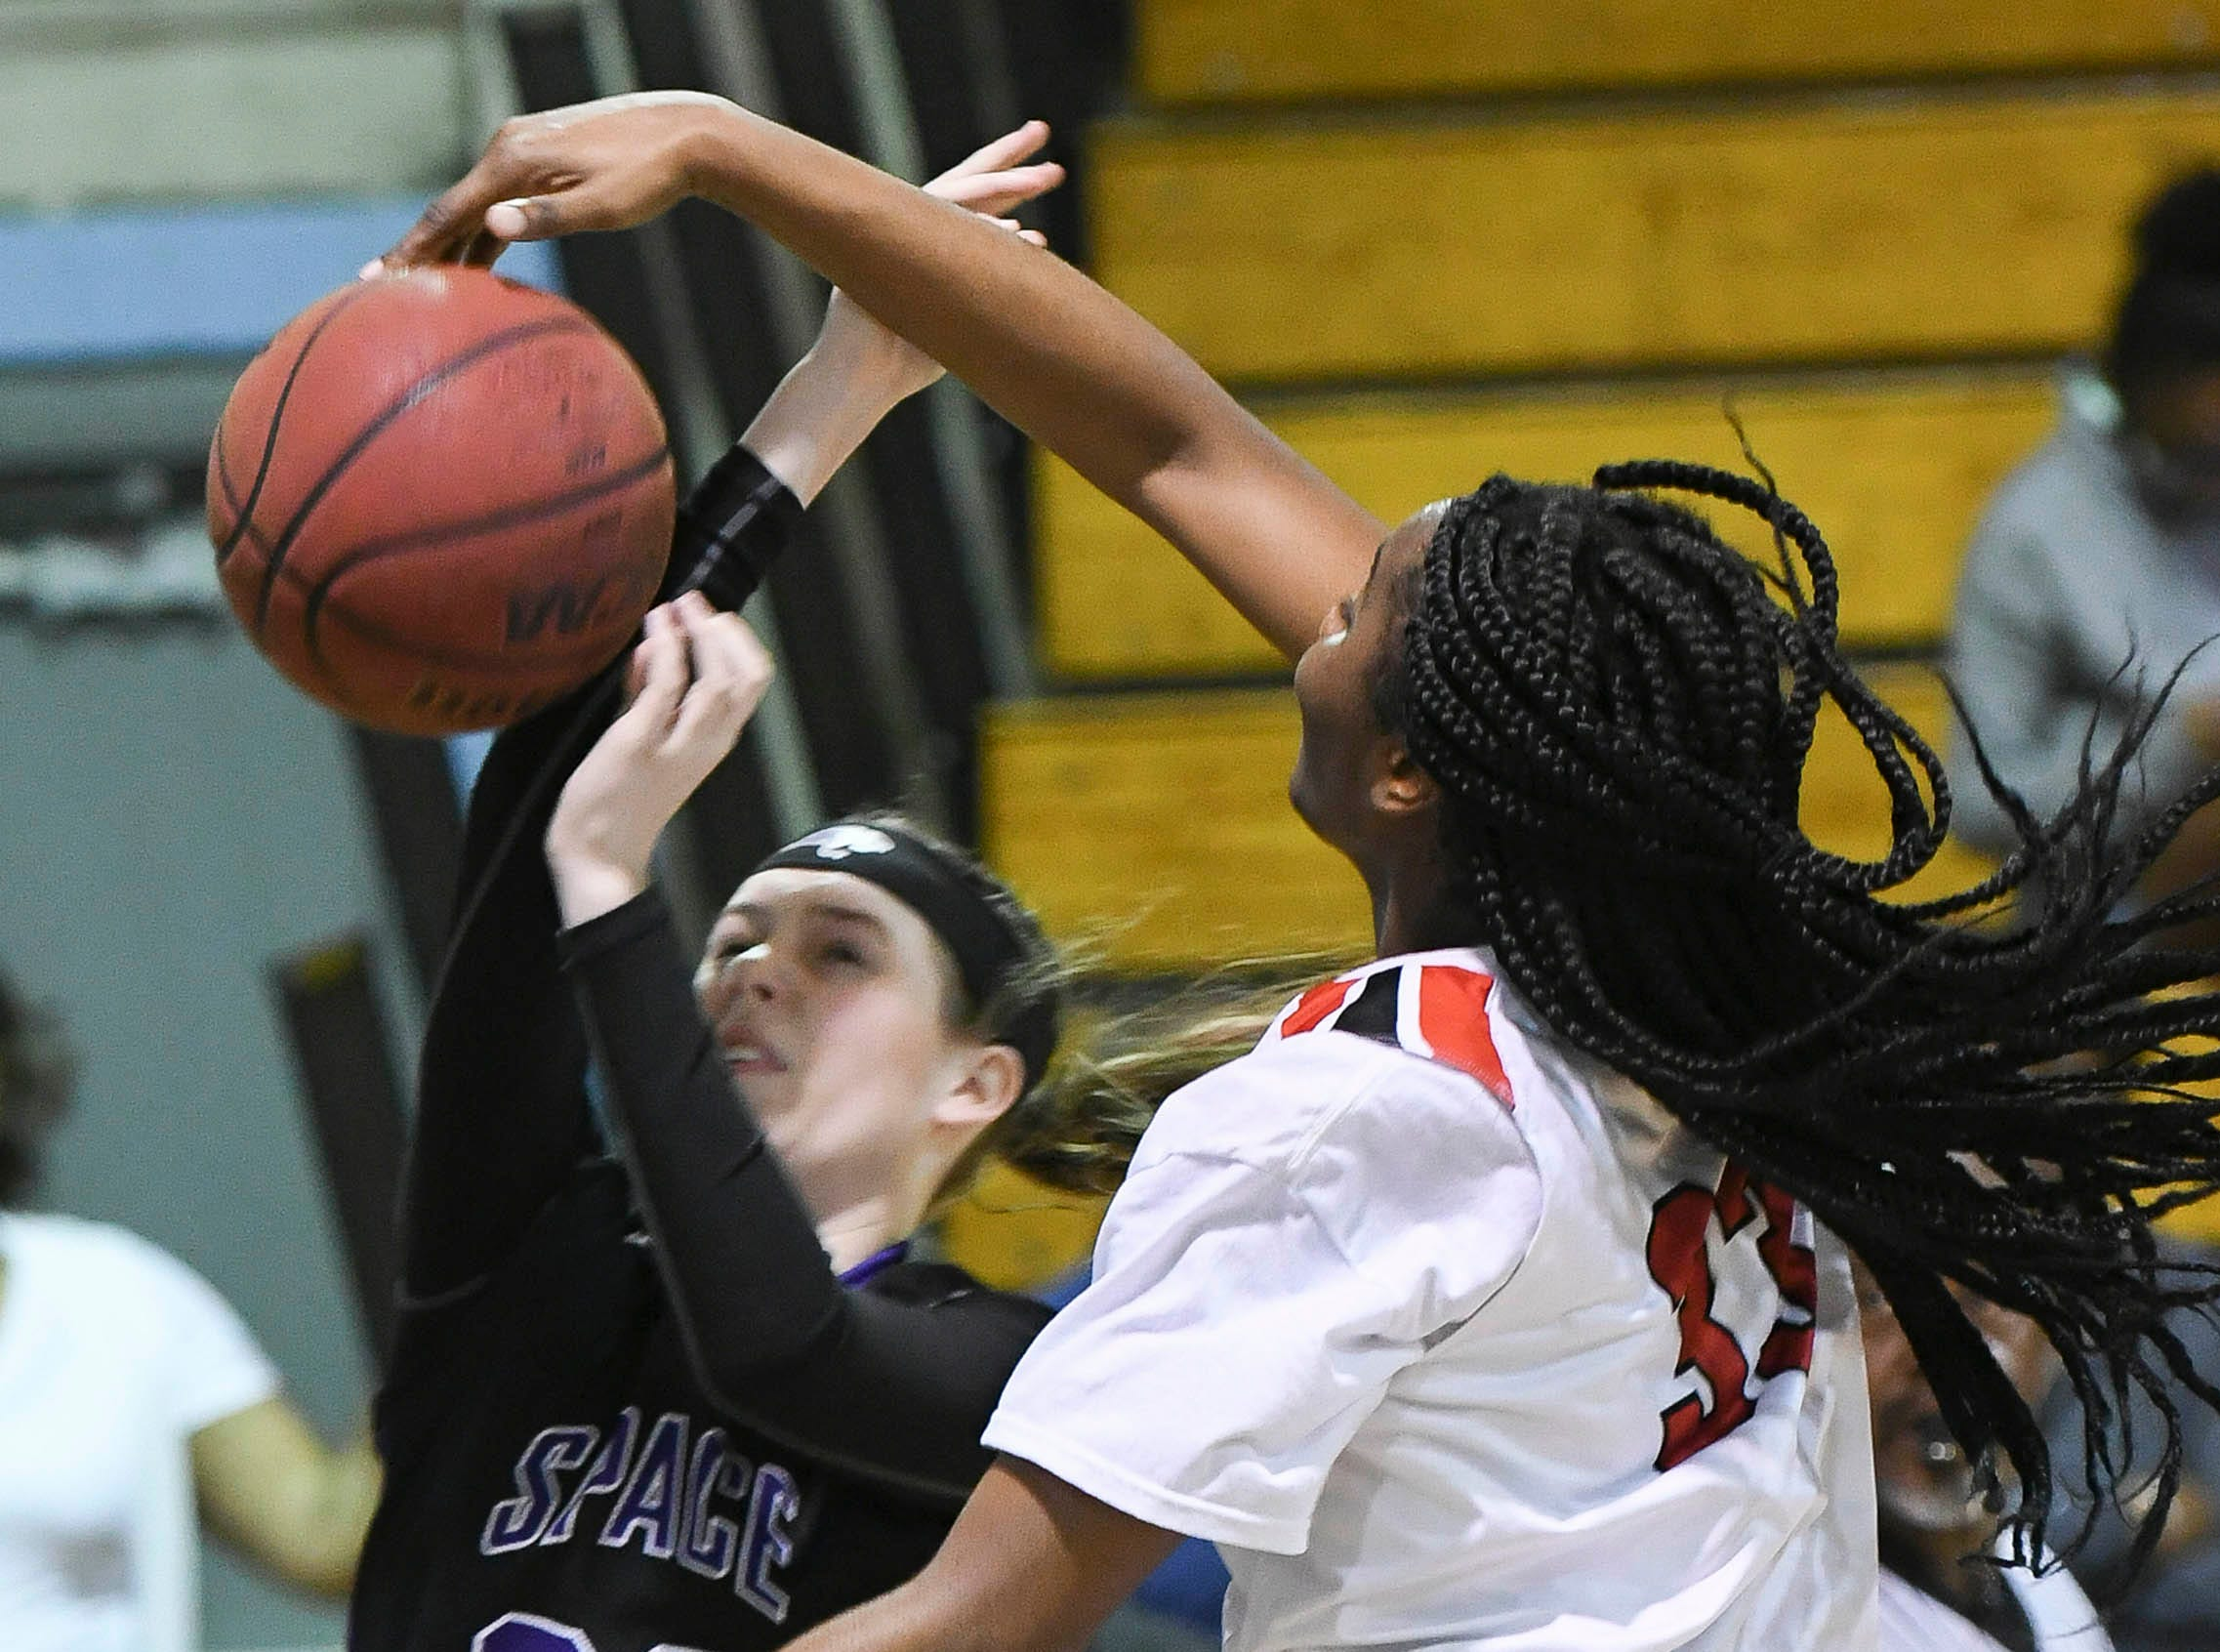 Lily Prelde of Space Coast has her shot blocked b Emani Burks of Palm Bay during Thursday's District 14-6A basketball tournament semifinal at Rockledge High School.